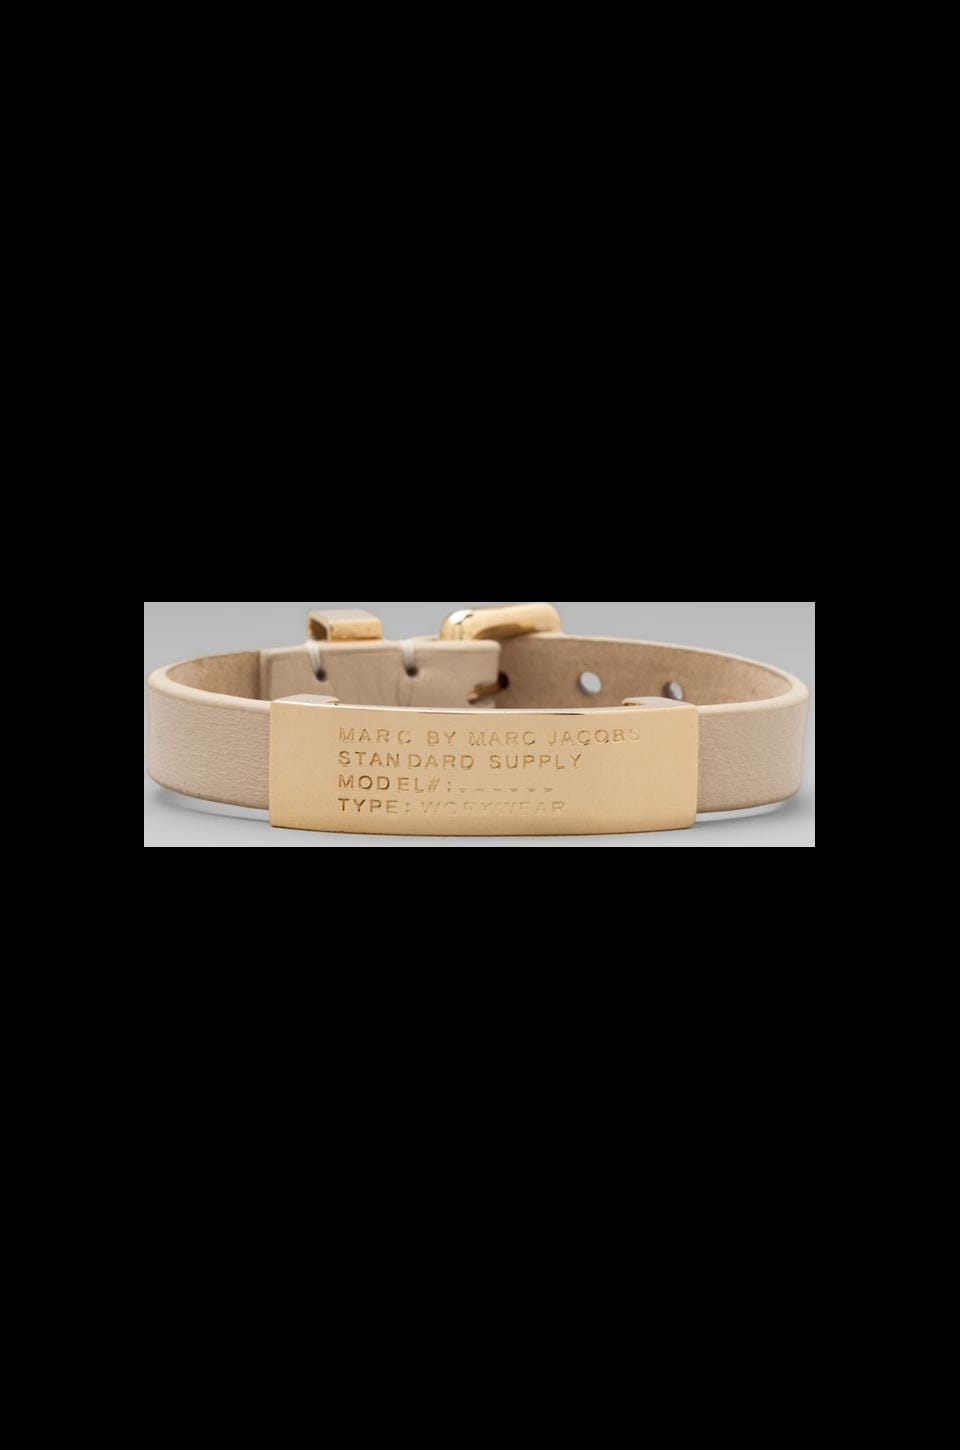 Marc by Marc Jacobs Standard Supply Id Bracelet in Light Sand/ Oro